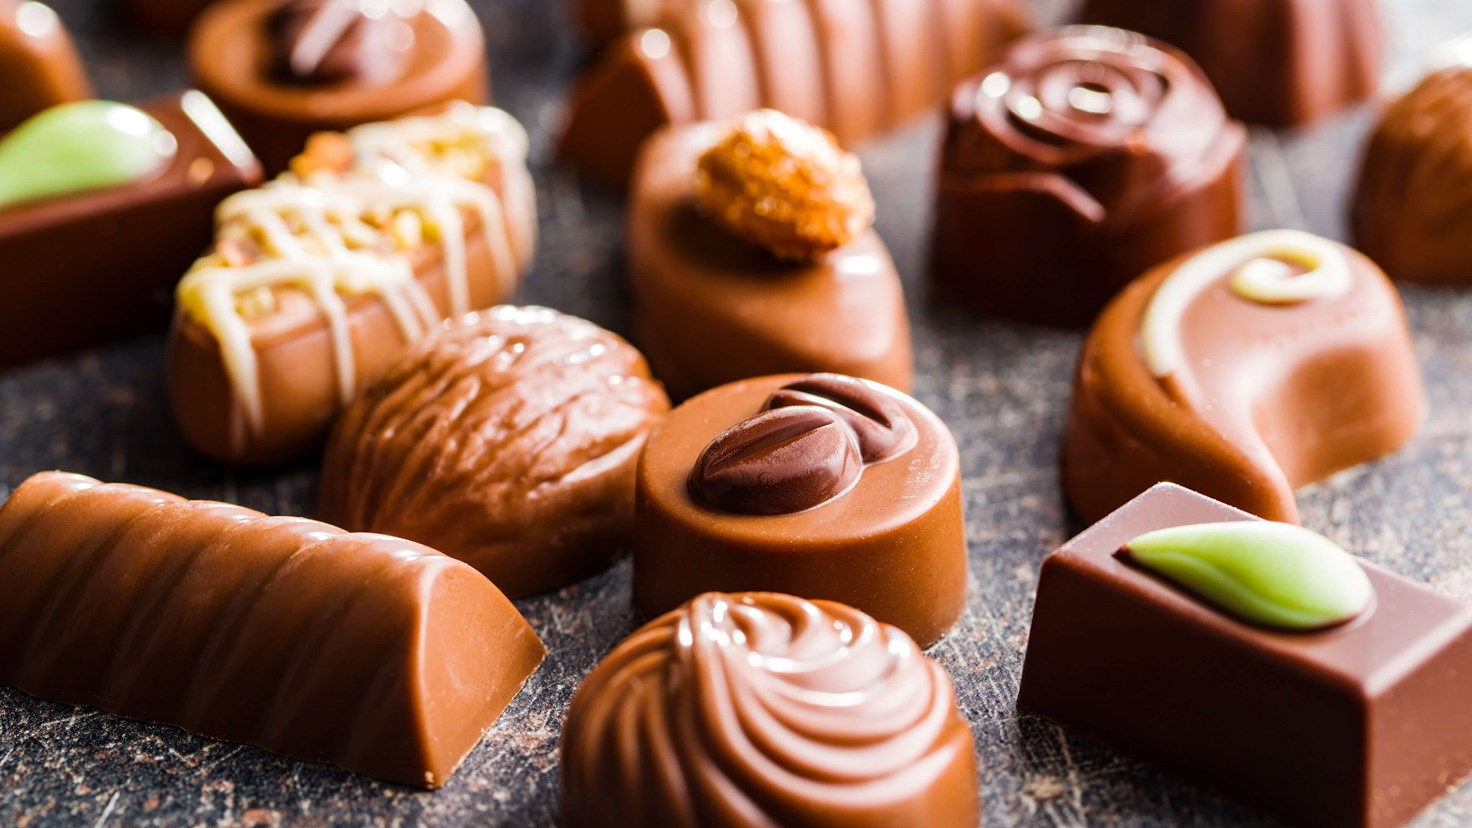 Palsgaard Specialises In Emulsifiers For chocolate And Confectionery Products